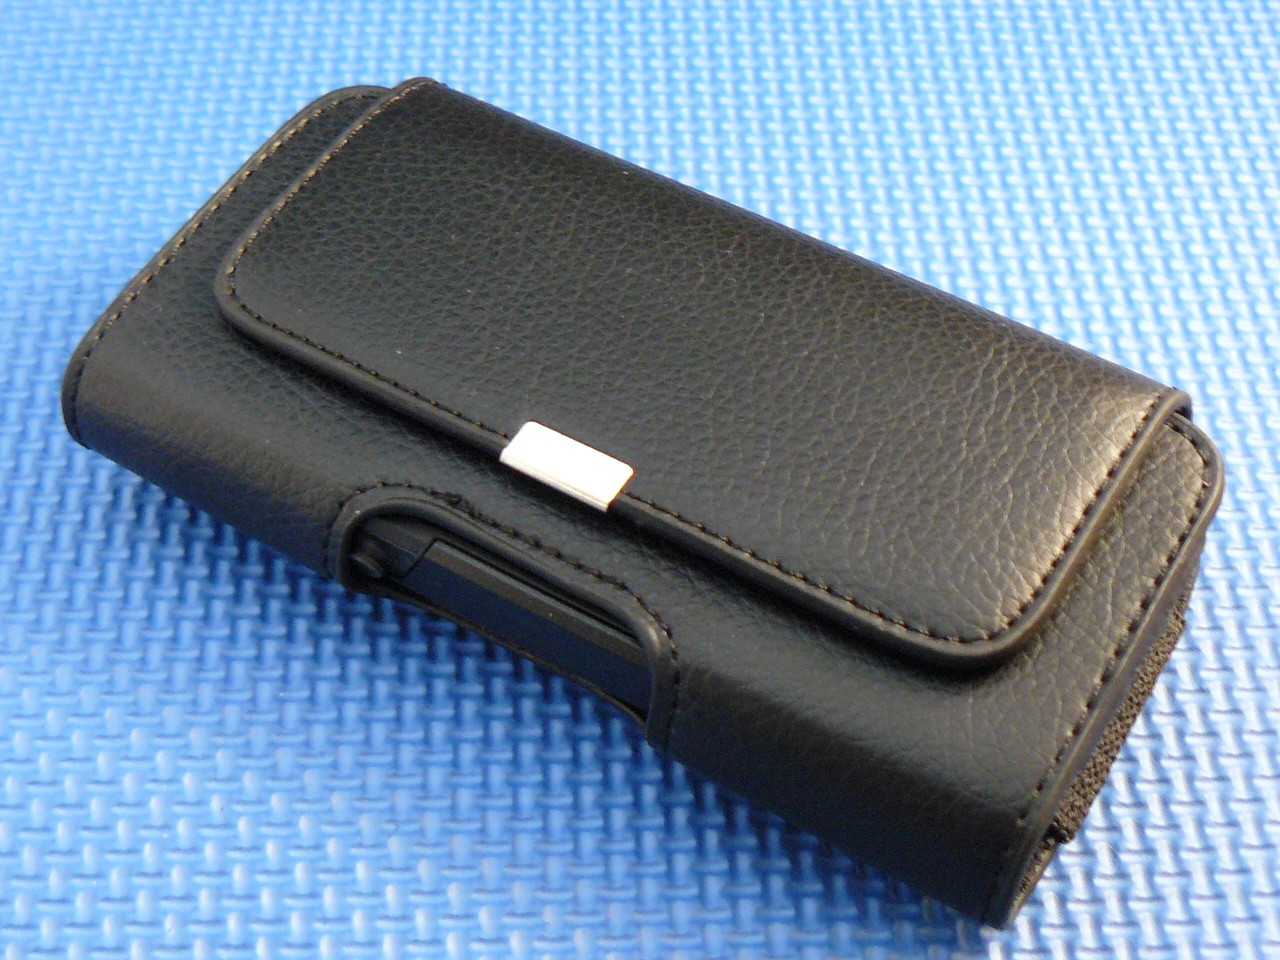 classic leather belt clip holster pouch for iphone 5